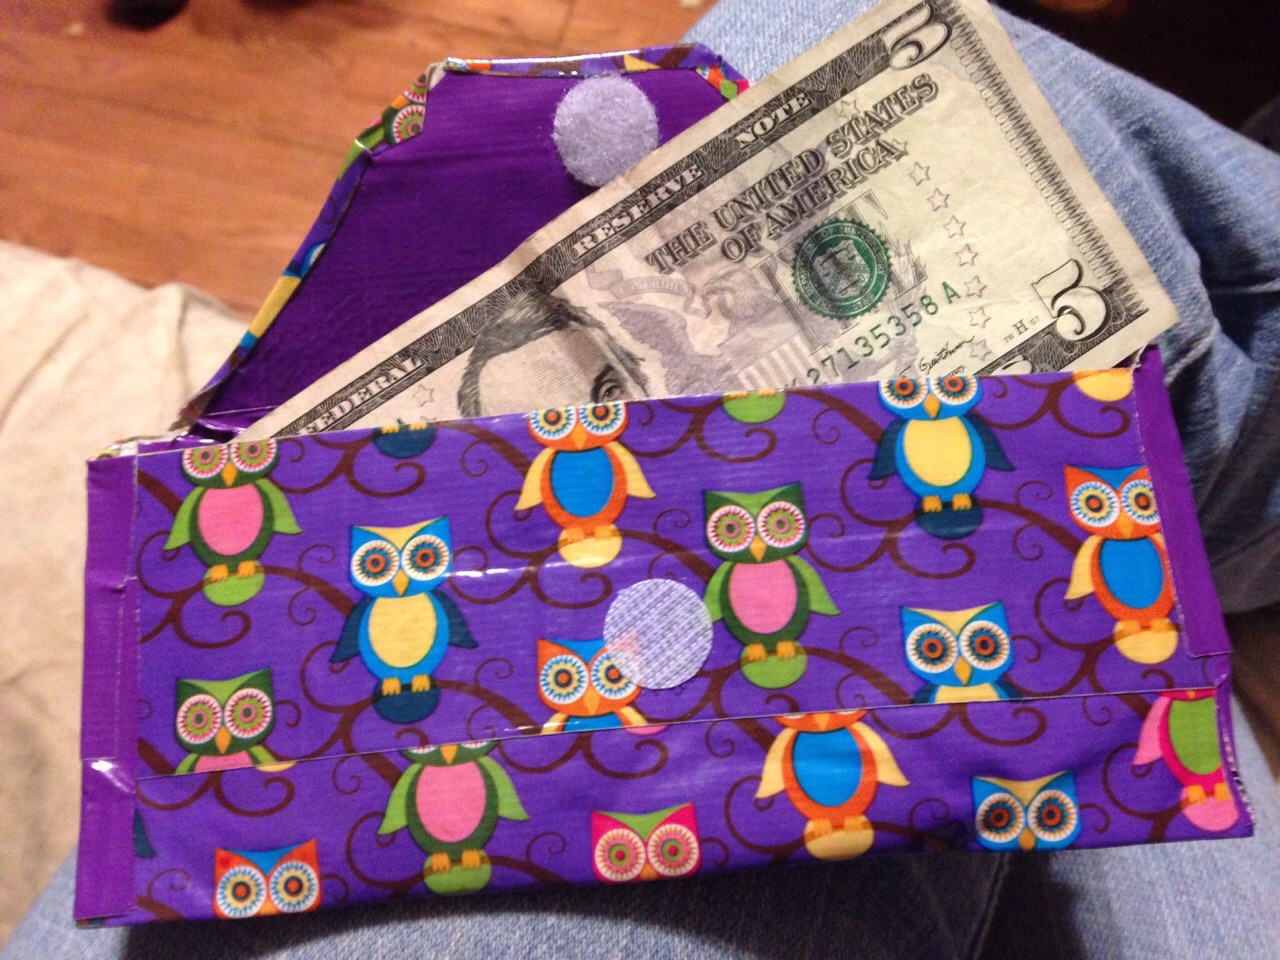 Cute Money Wallet For Gifts Made From Duct Tape!!!